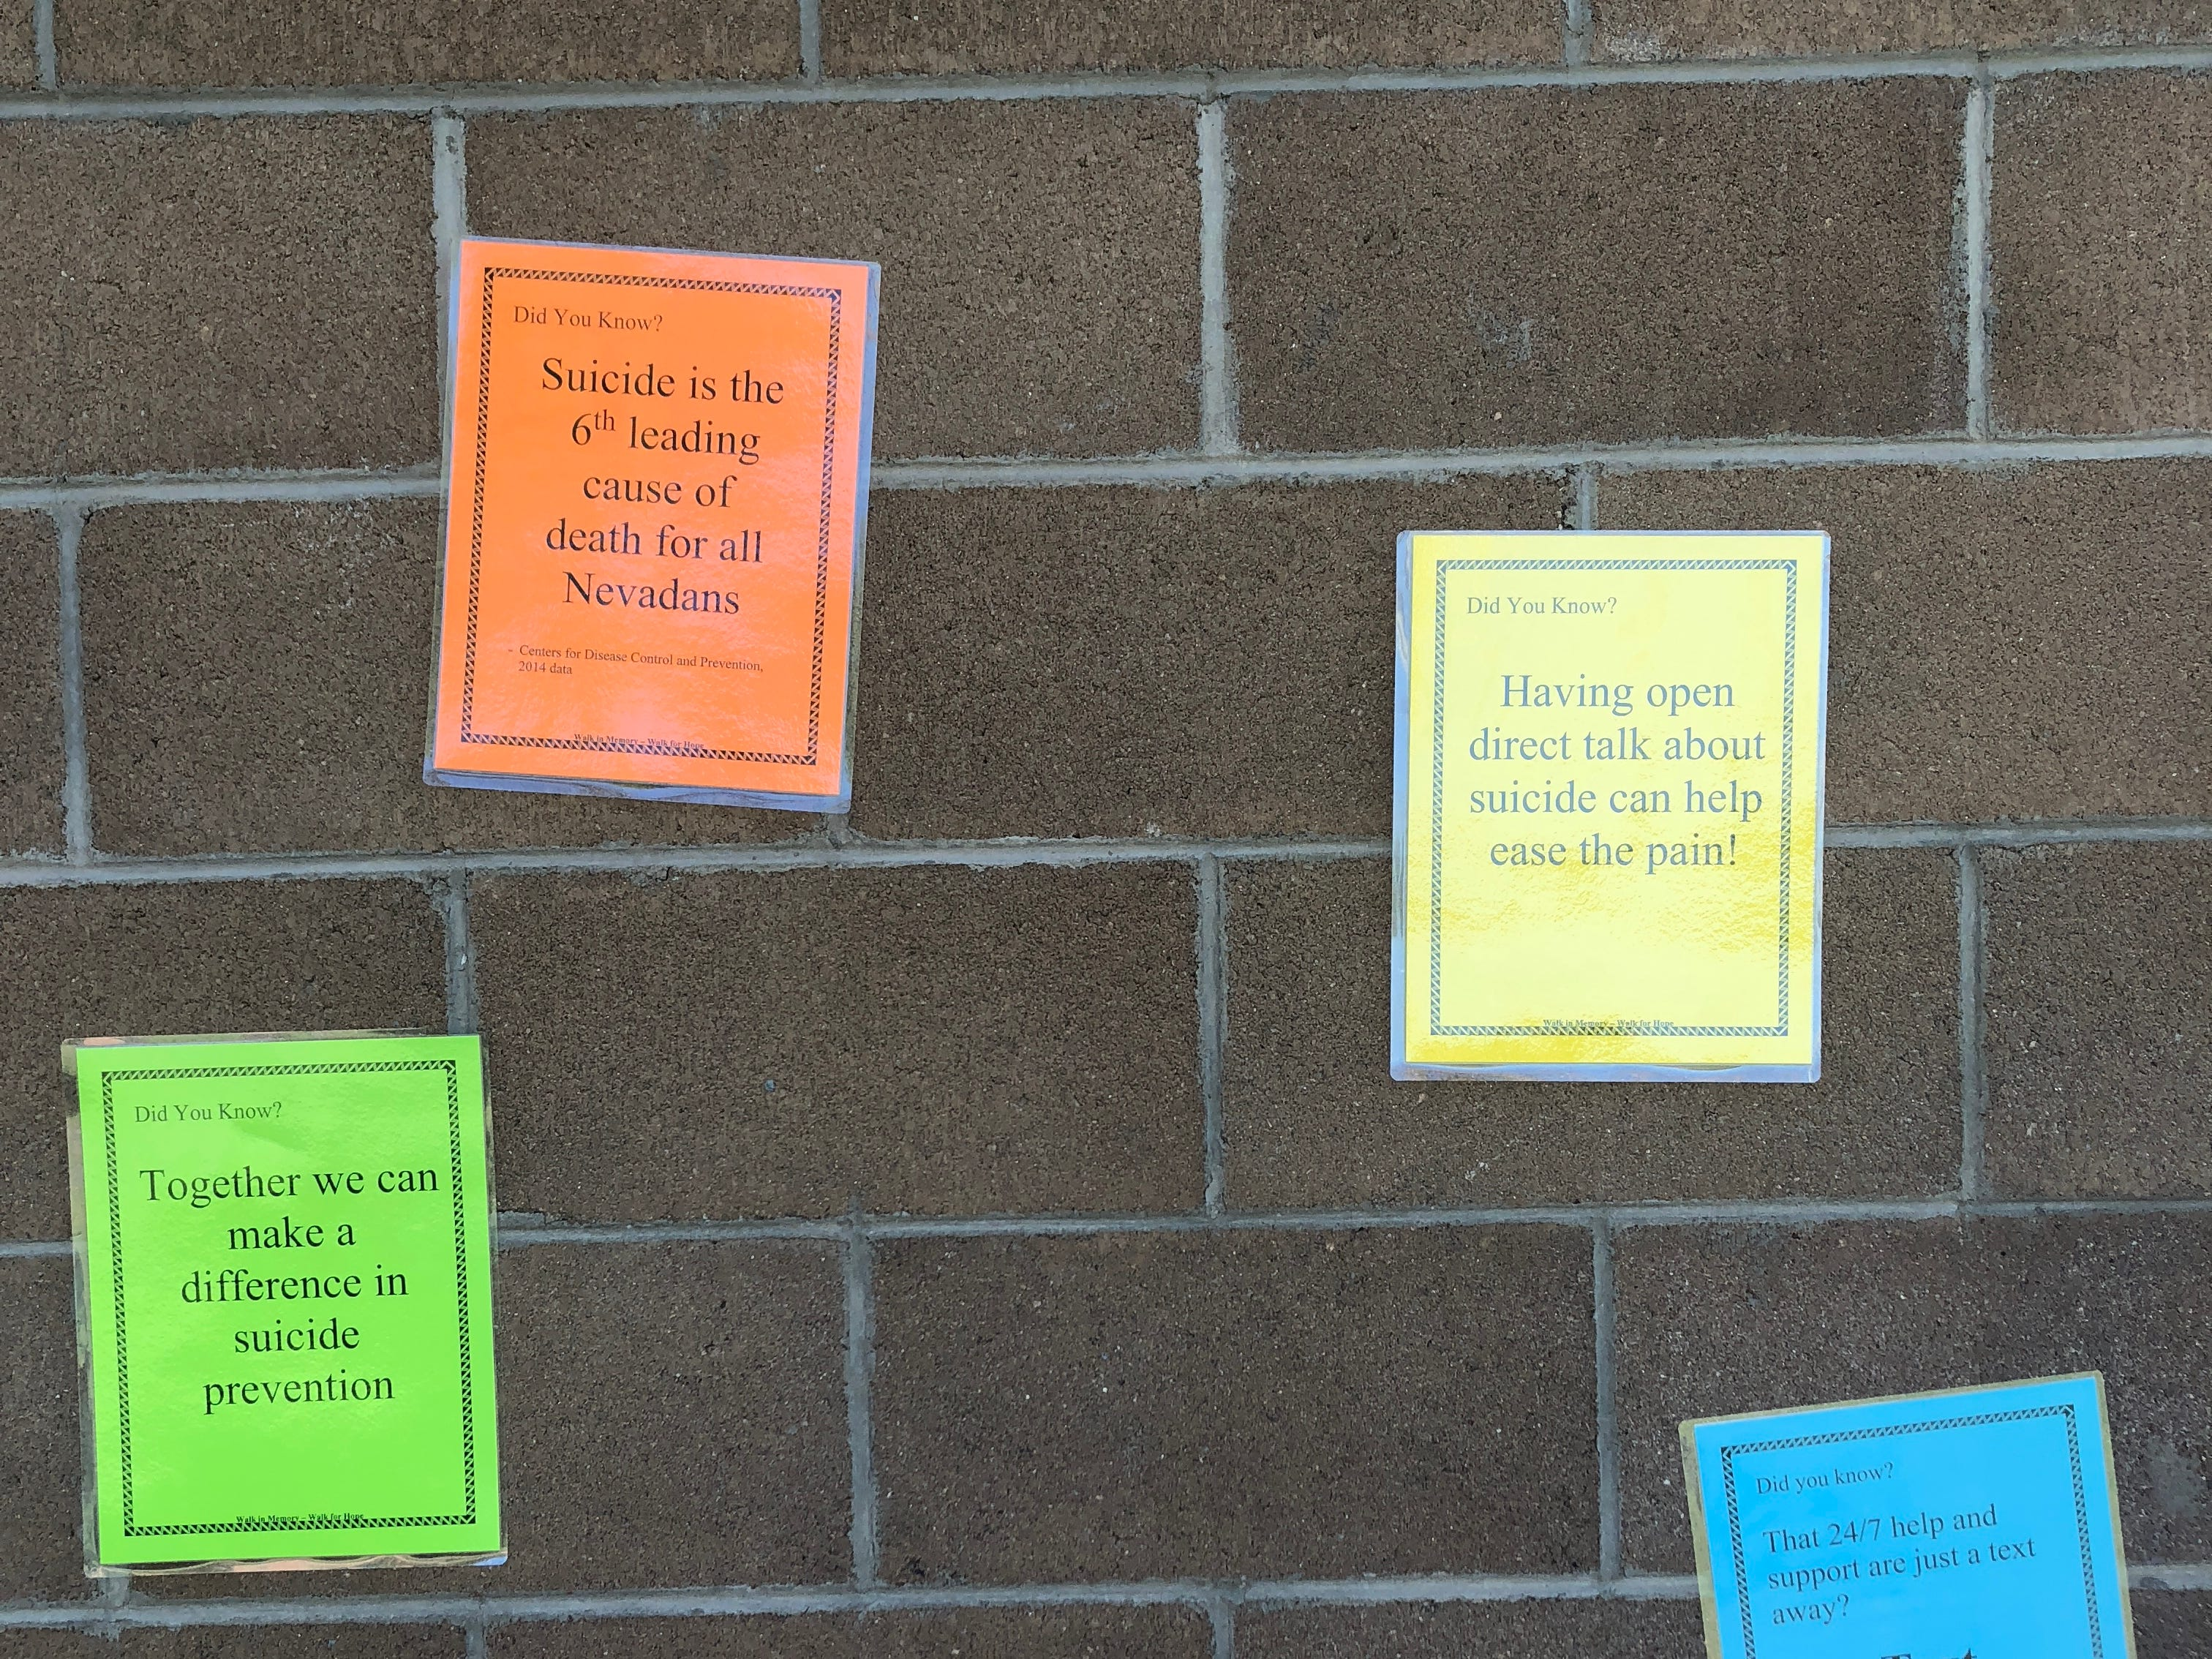 Facts about suicide and prevention are posted at the Mesquite Recreation Center on Saturday, Sept. 15, 2018.